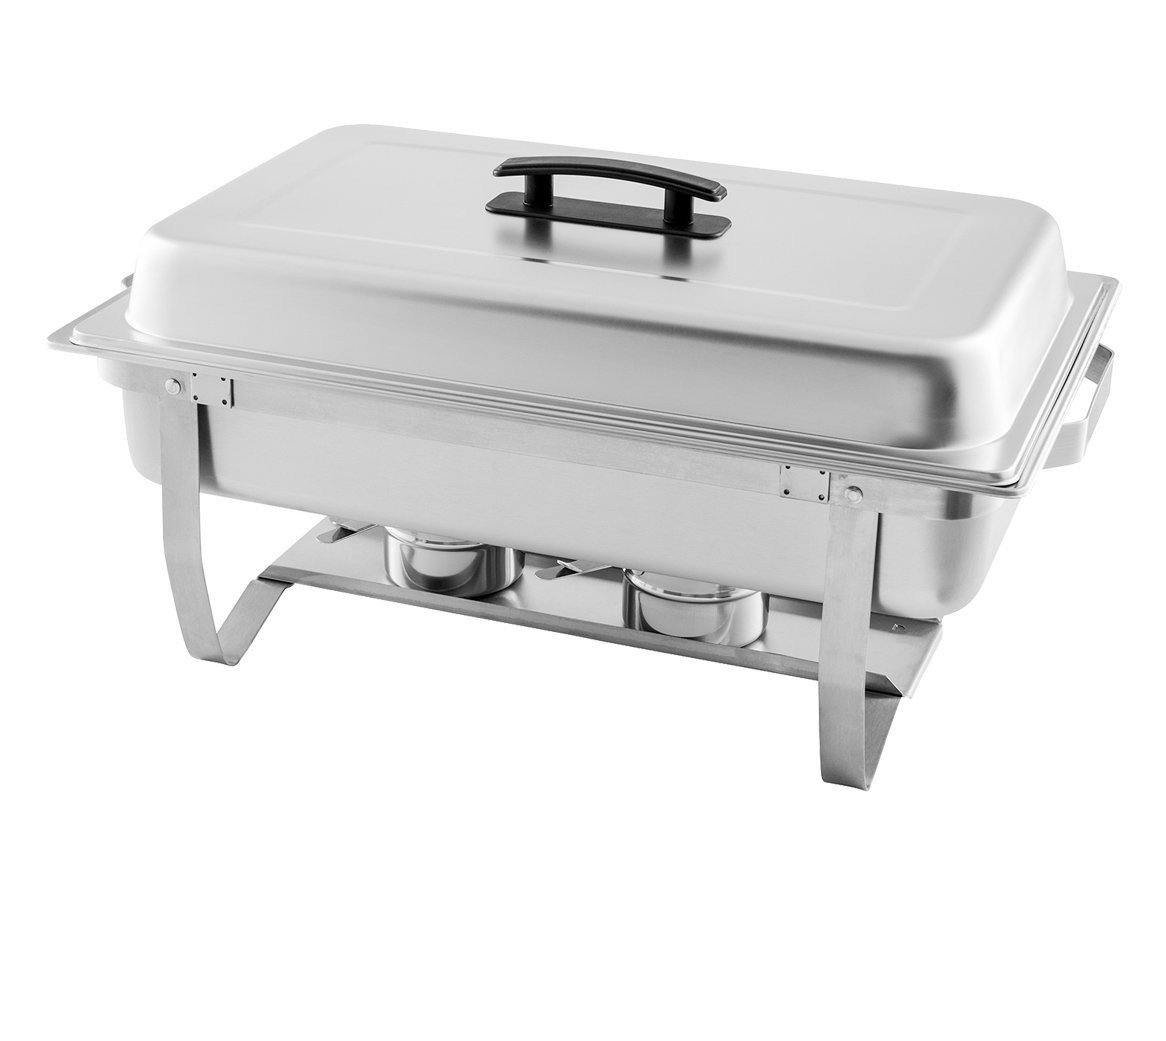 TigerChef 8 Quart Full Stainless Steel Chafer with Folding Frame and Cool-Touch Plastic Handle (1)